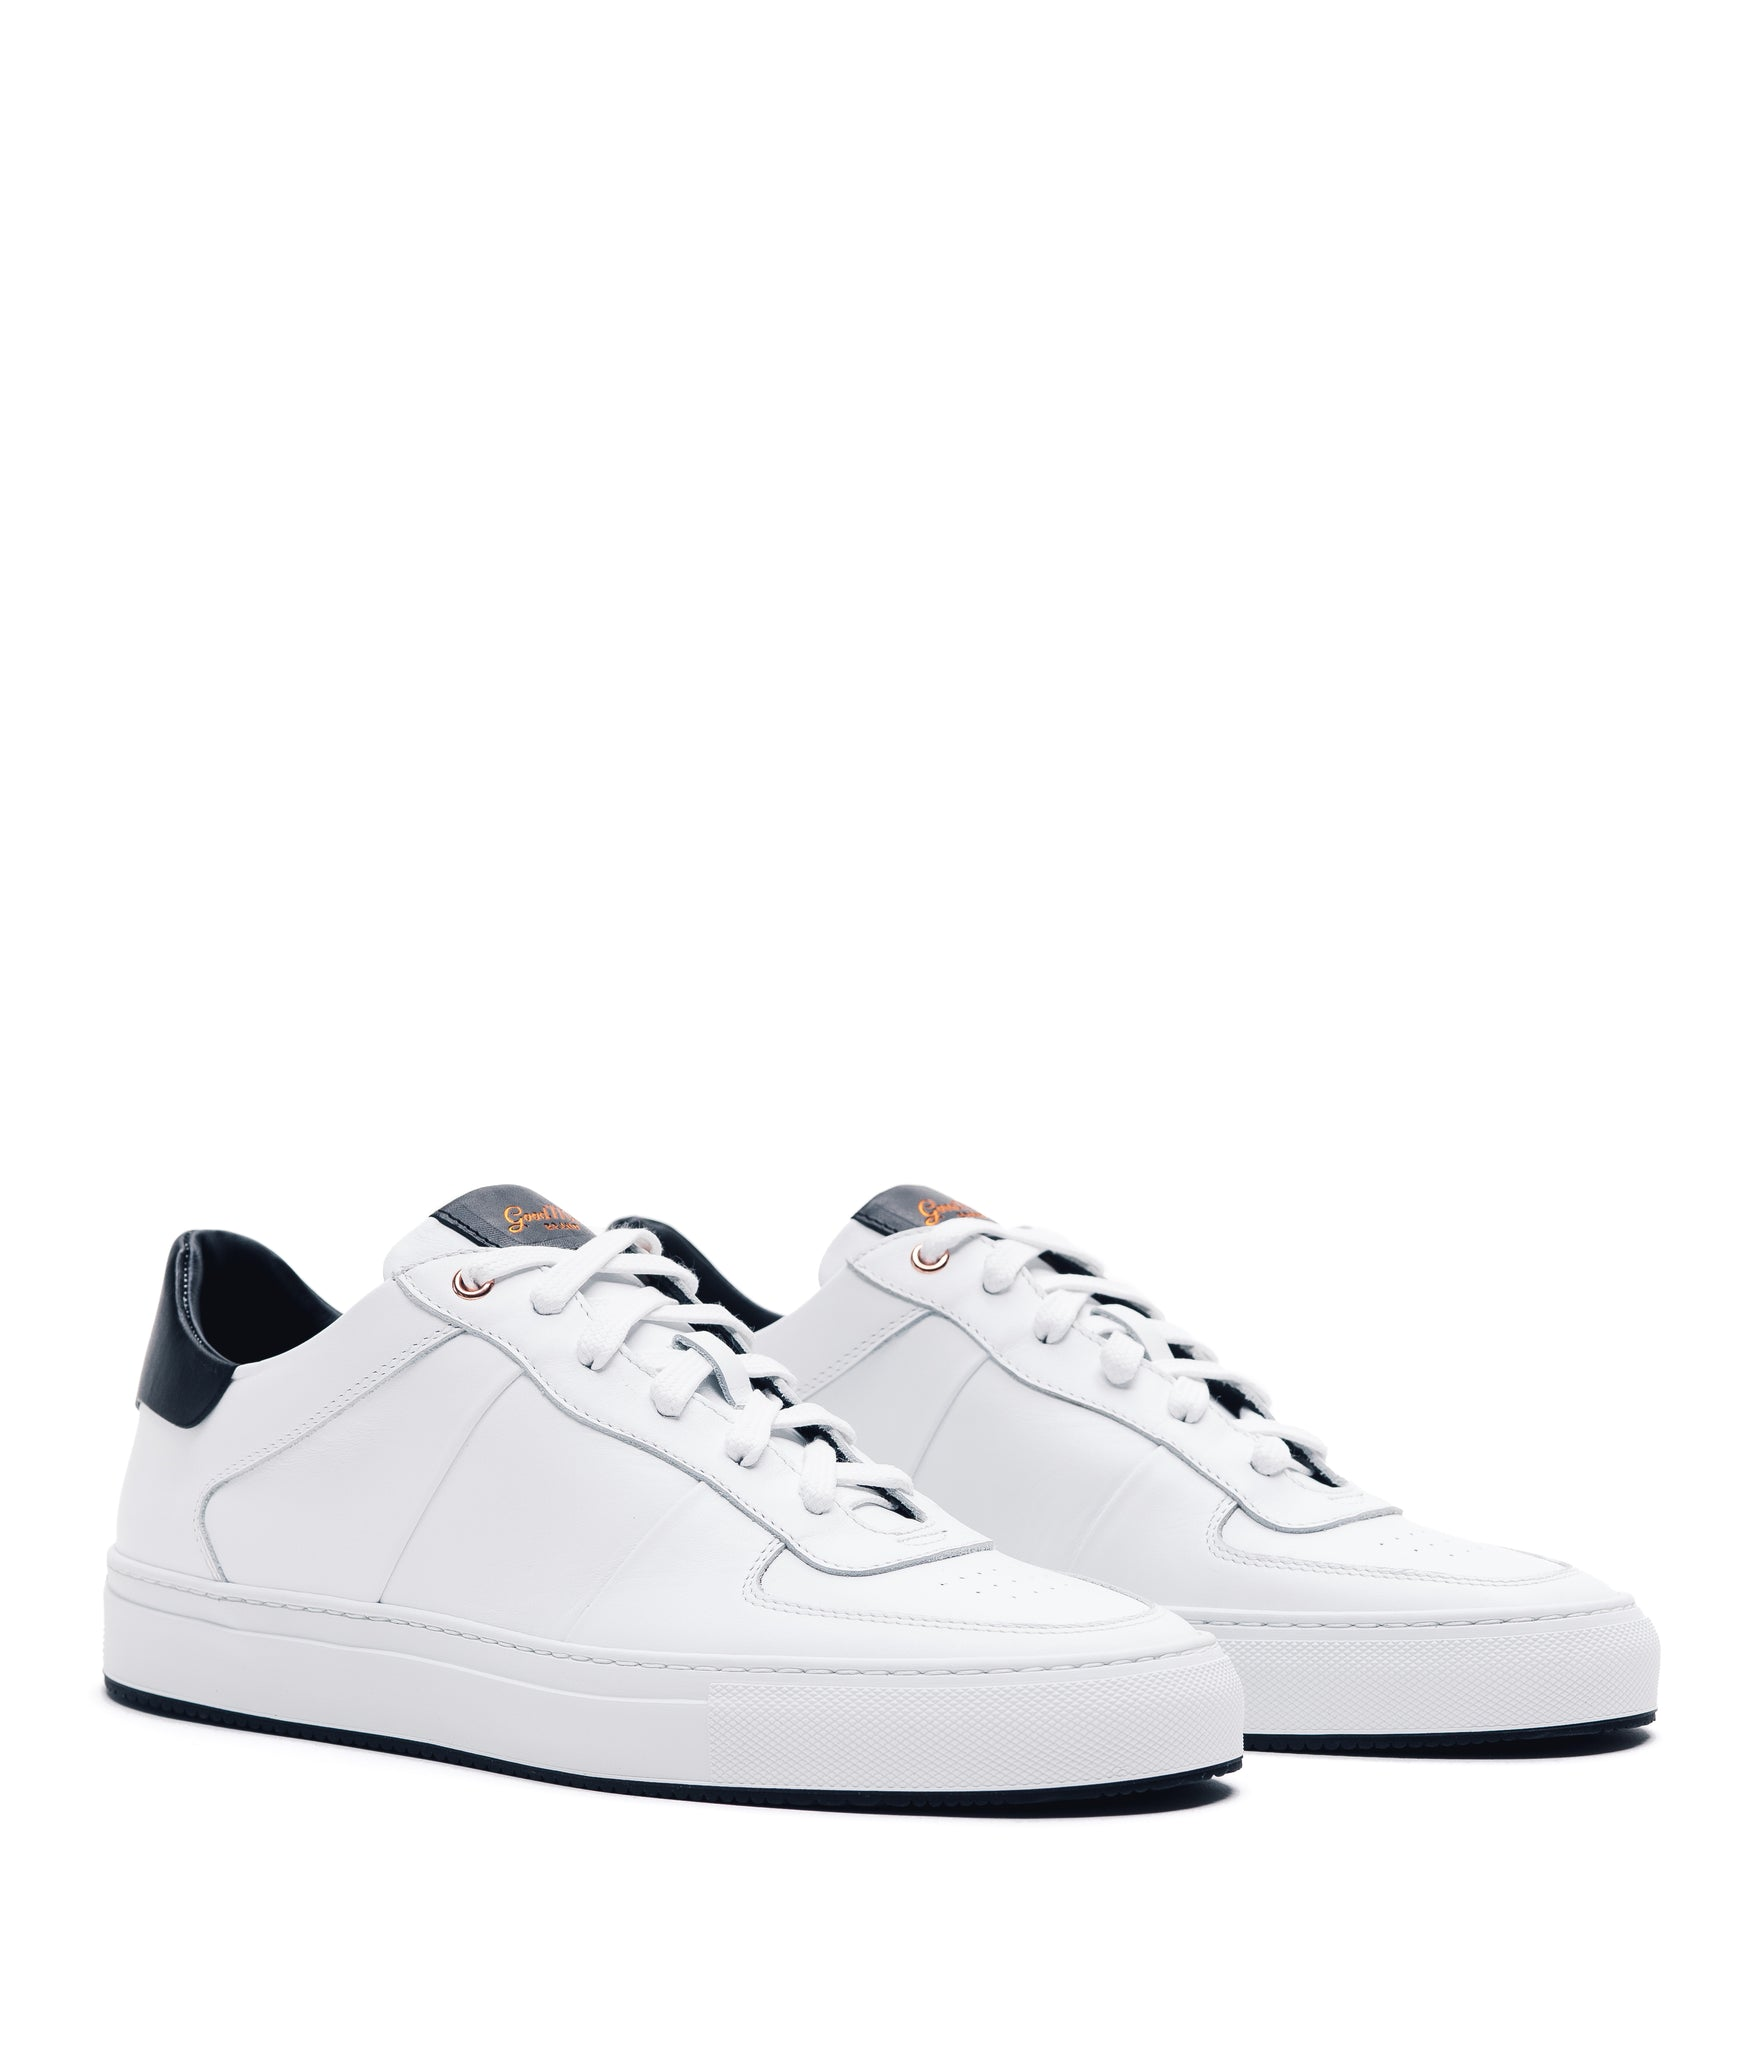 Legend Pro Lo-Top Premium Sneaker - White / Black - Good Man Brand - Legend Pro Lo-Top Premium Sneaker - White / Black